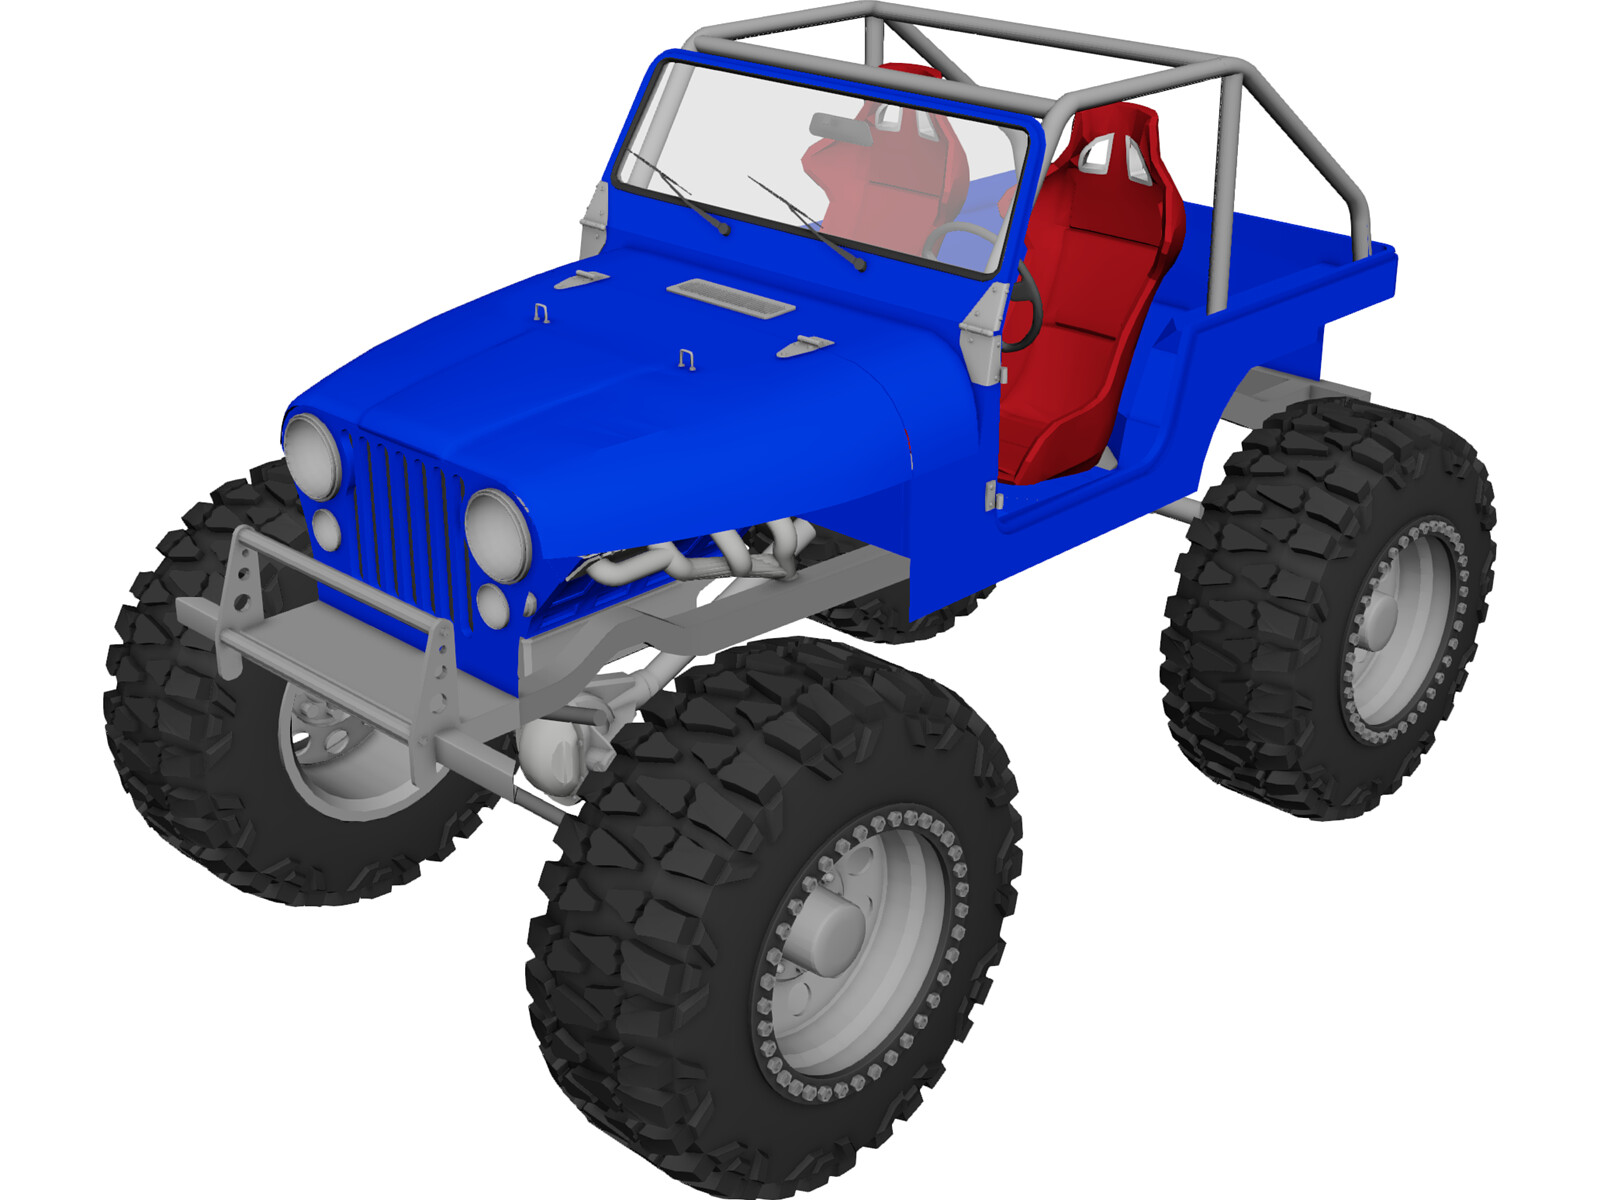 Jeep CJ5 Rock Crawler (1975)